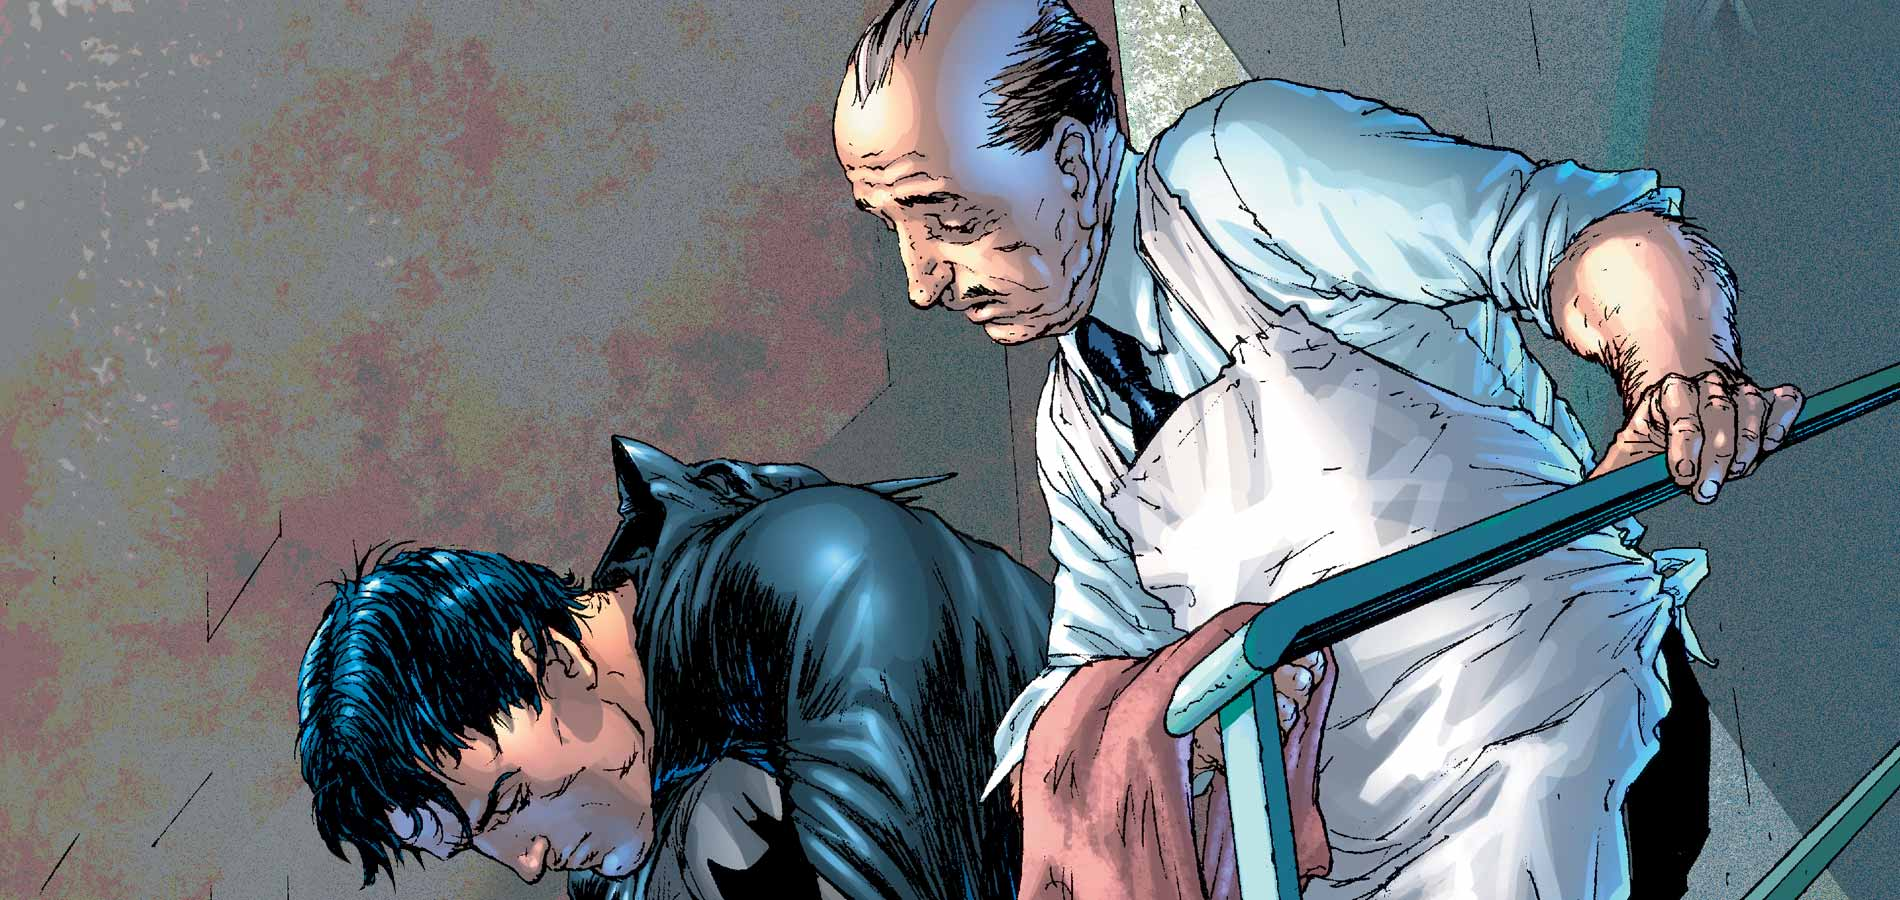 Bruce Wayne and Alfred Pennyworth. (Source: DC Comics)